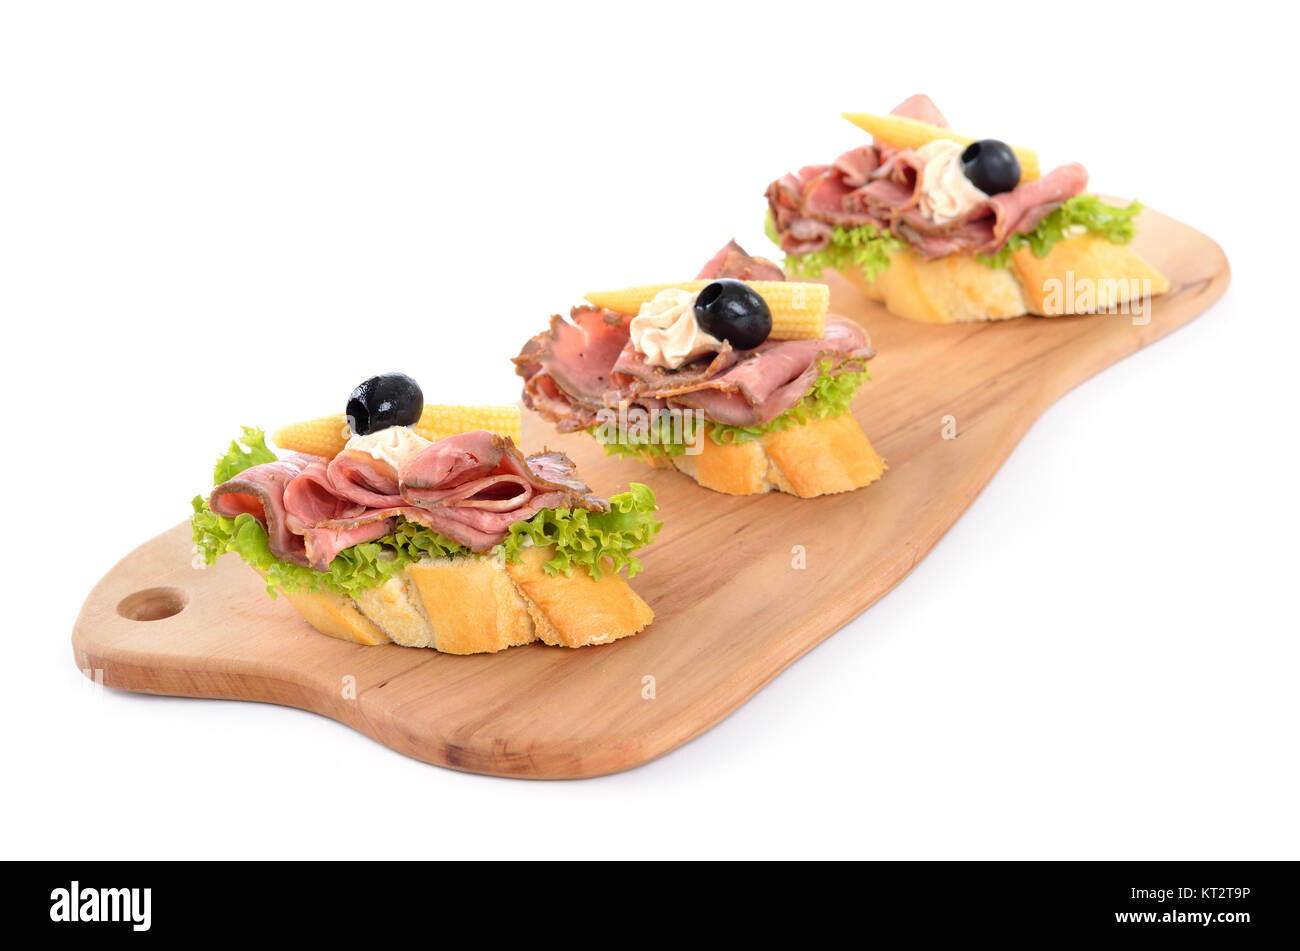 Baguette with roast beef, small corn cobs, cream cheese and black olives on an wooden cutting board - Stock Image